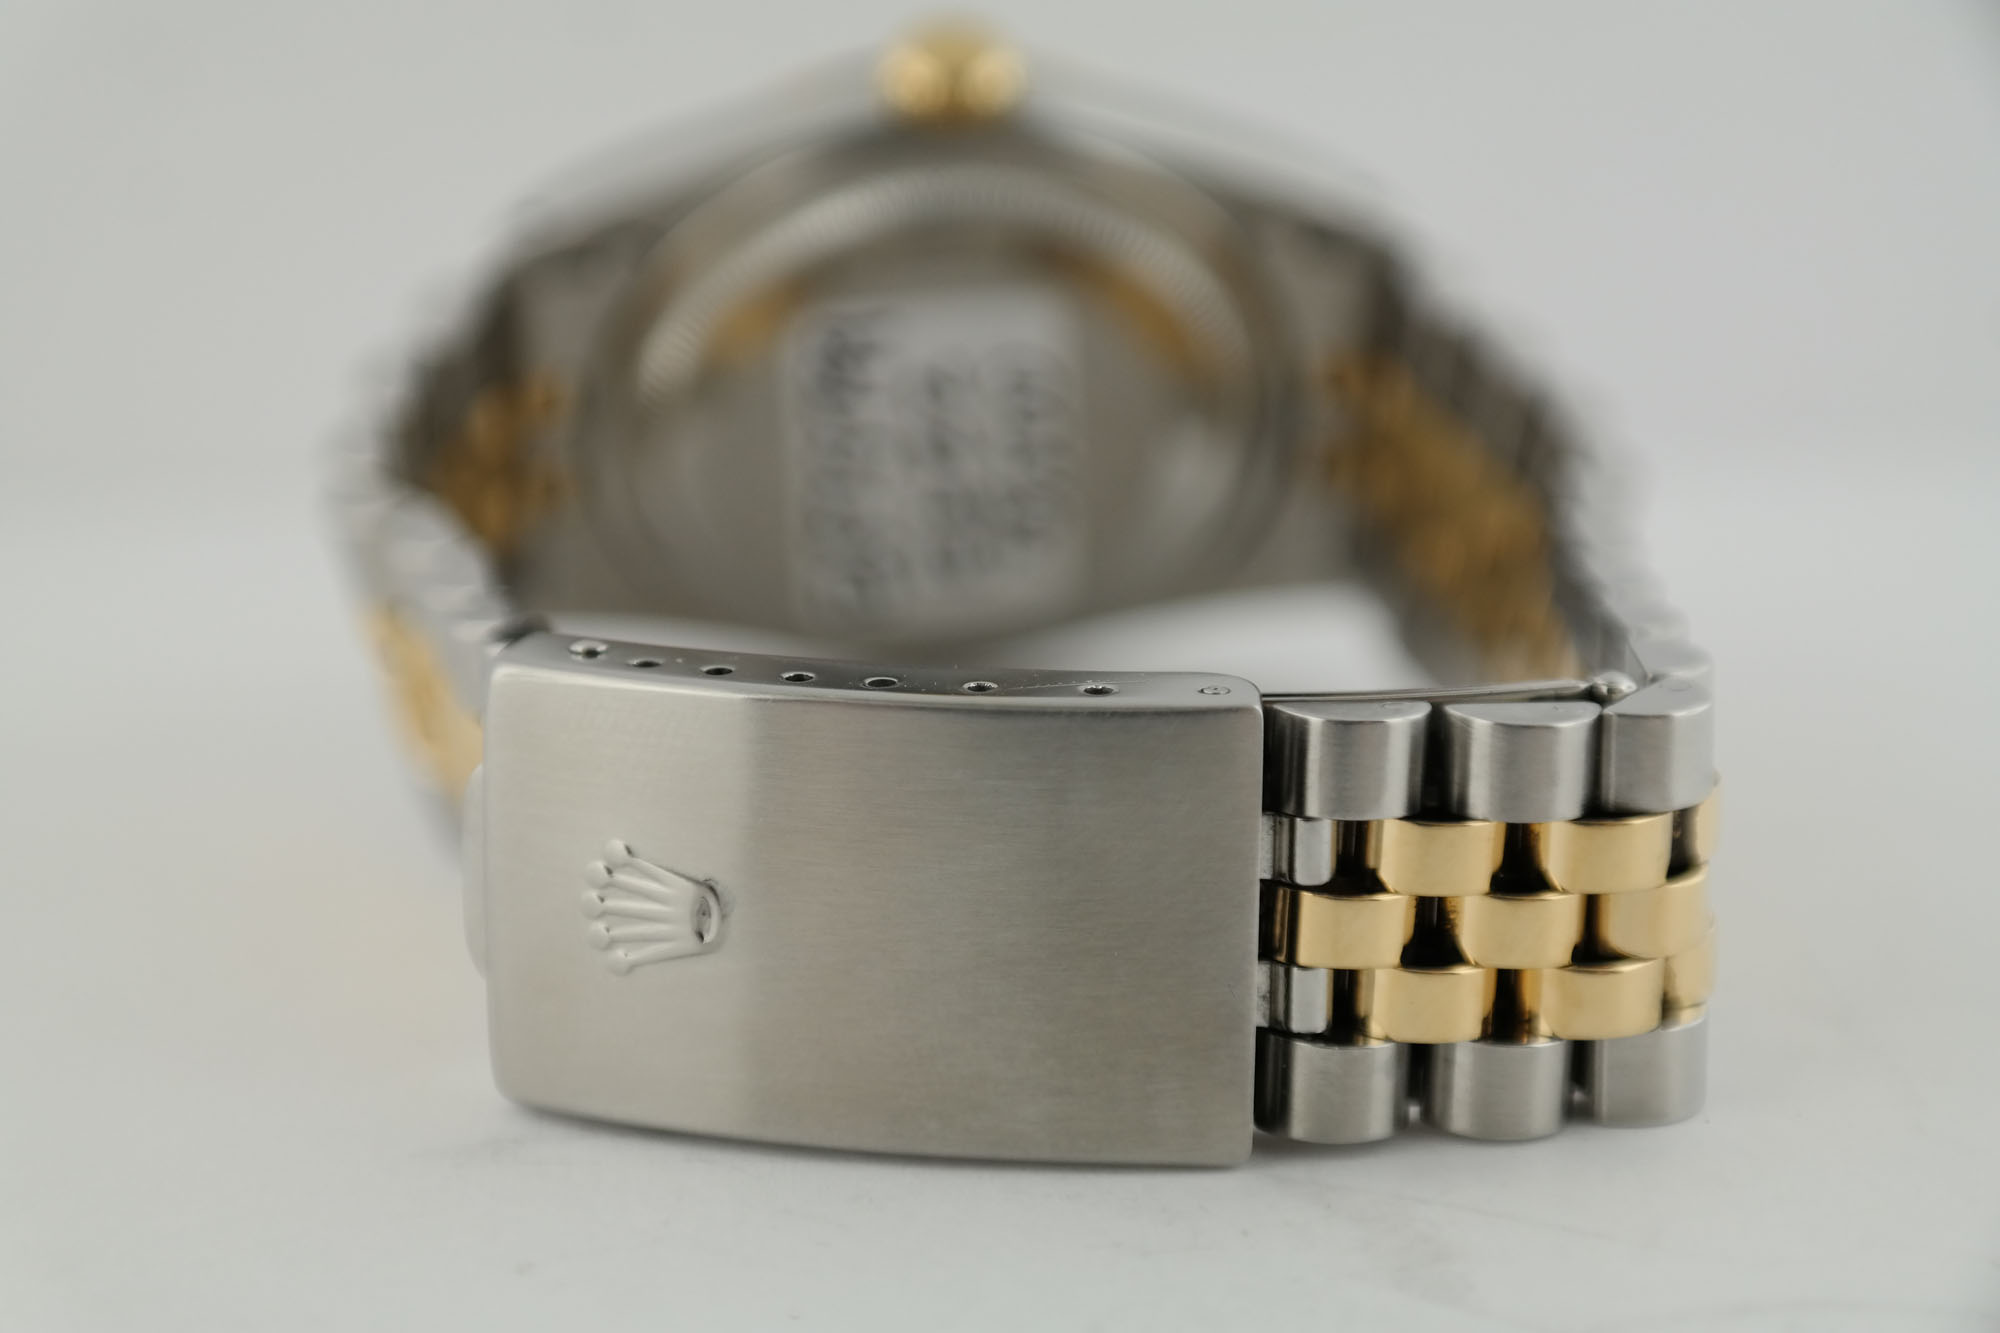 Rolex Datejust 16233 Champagne Diamond Dial Jubilee Band 36mm Two-Tone Year 1990